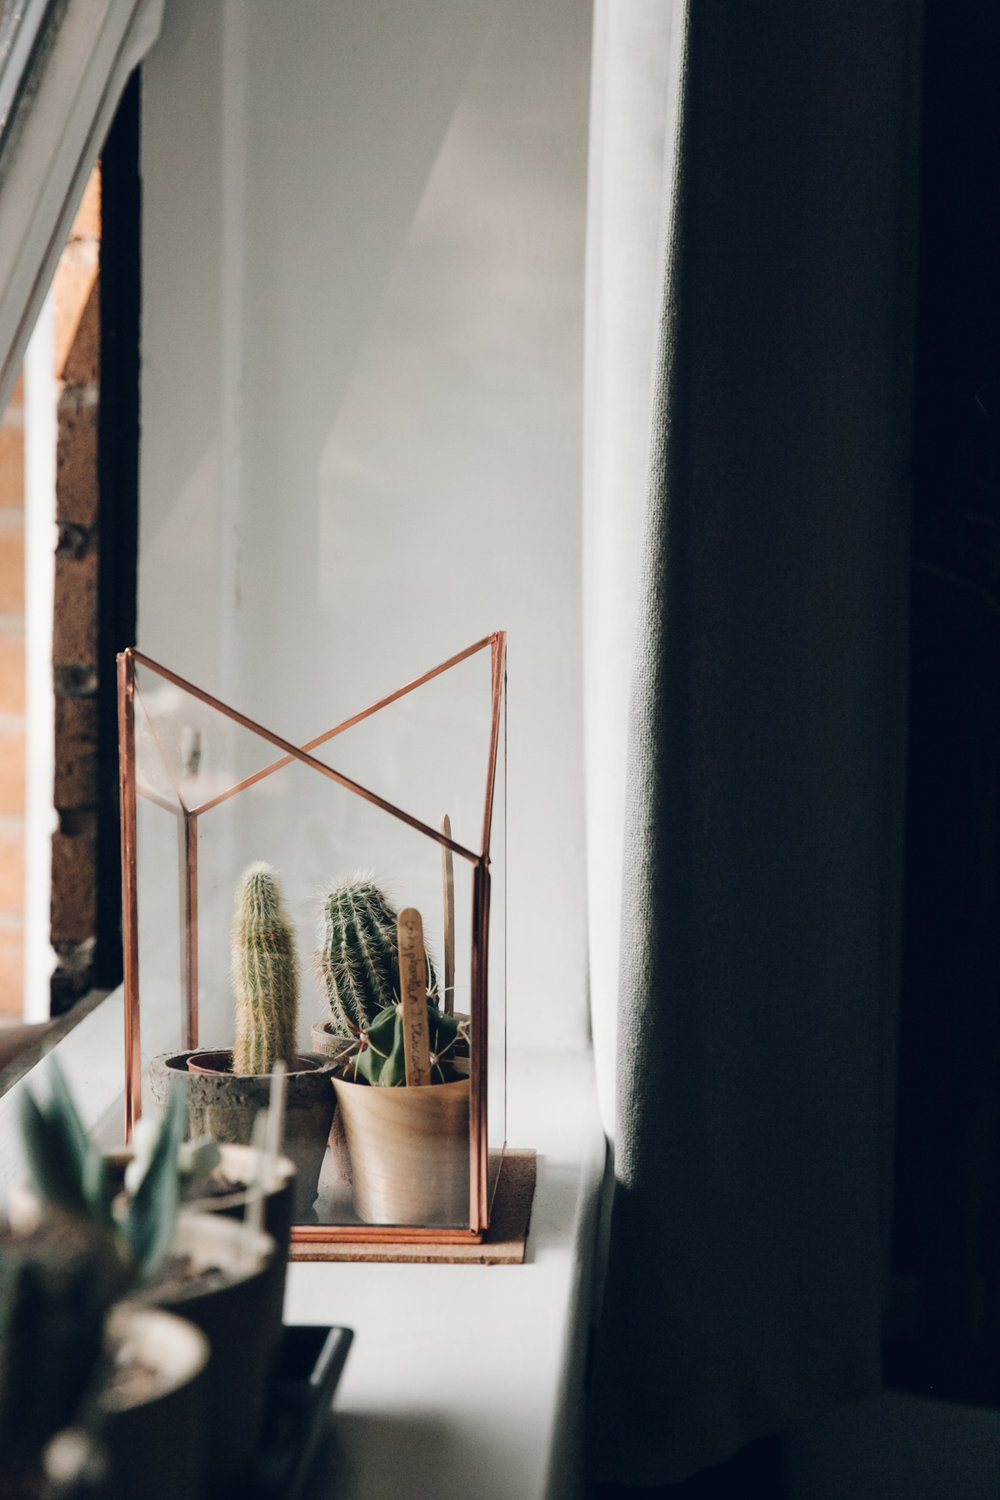 Cacti on the windowsill with copper details.